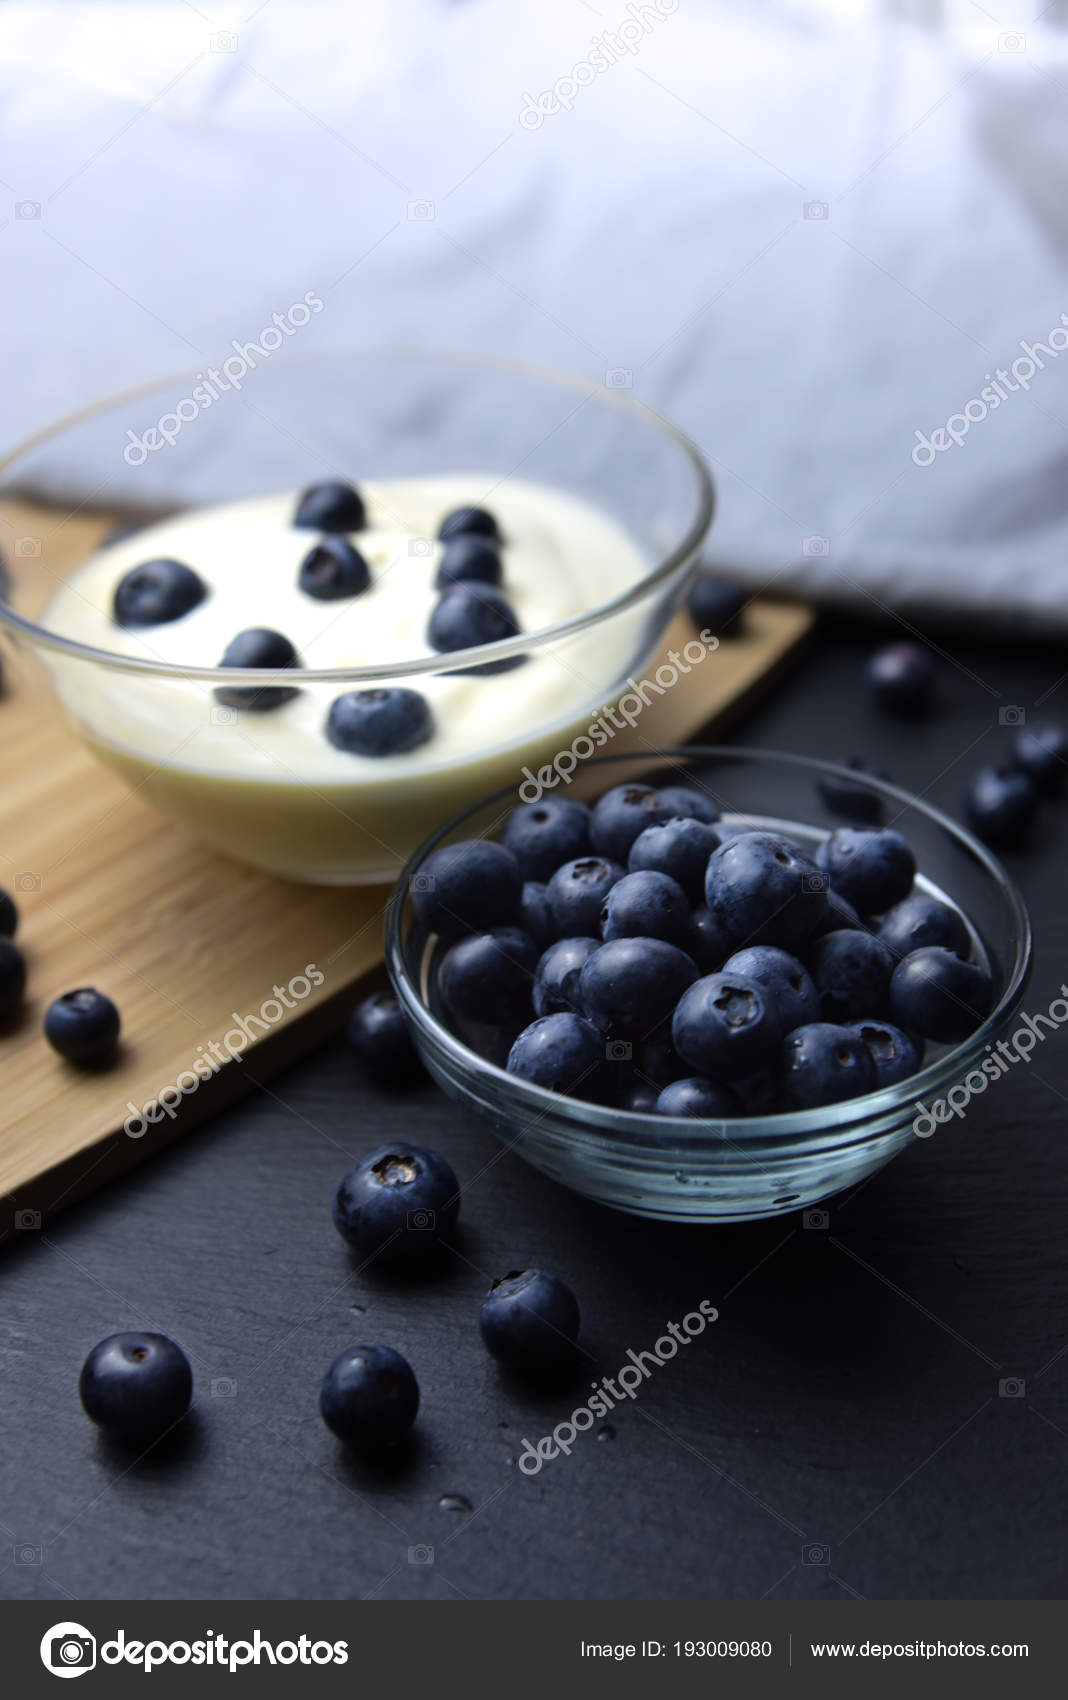 Blueberry Yogurt In Glass Bowl On Wooden Table Stock Photo